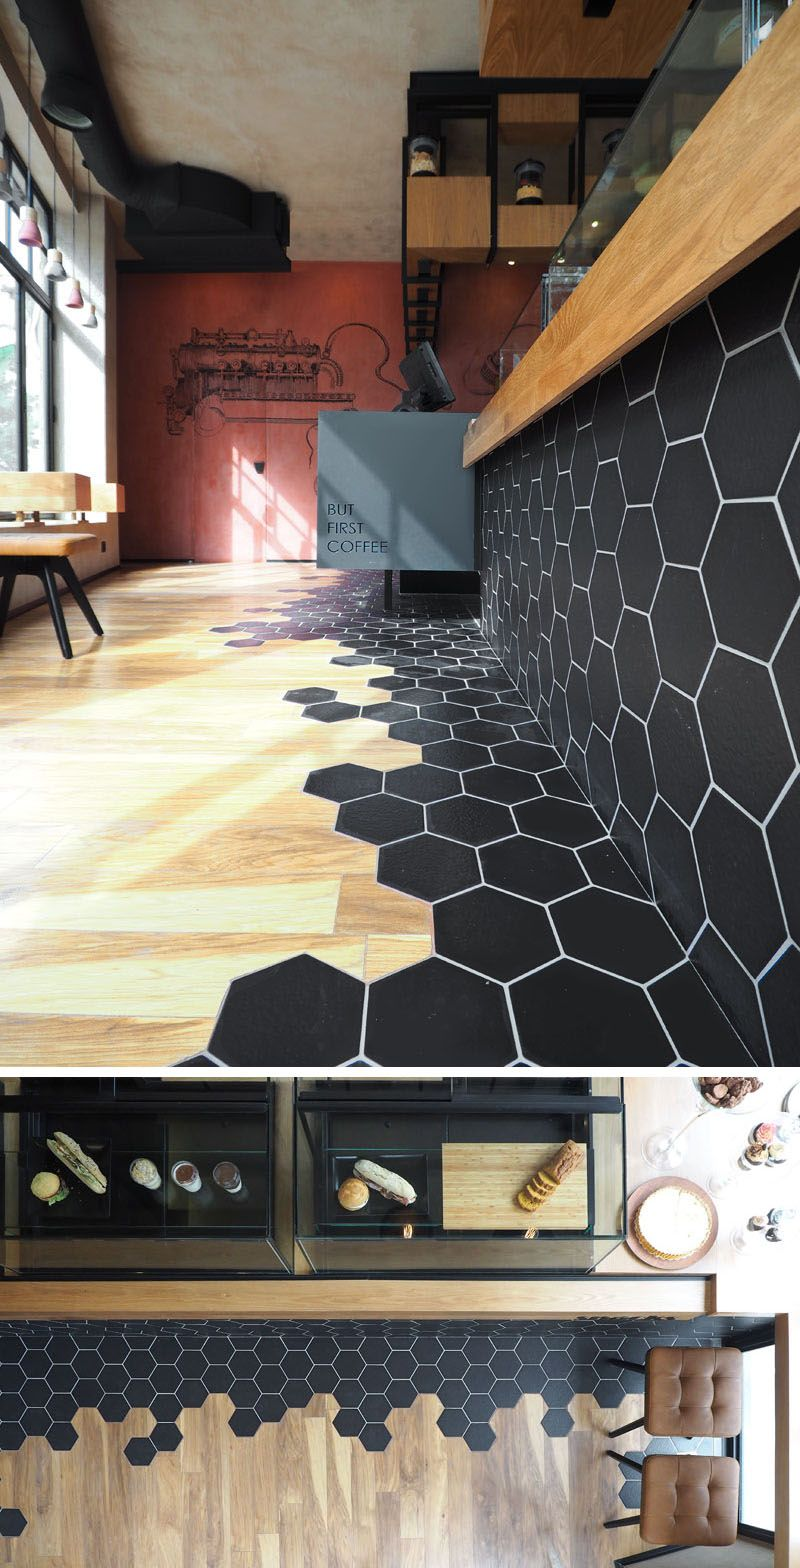 hexagon tiles transition into wood flooring inside this. Black Bedroom Furniture Sets. Home Design Ideas